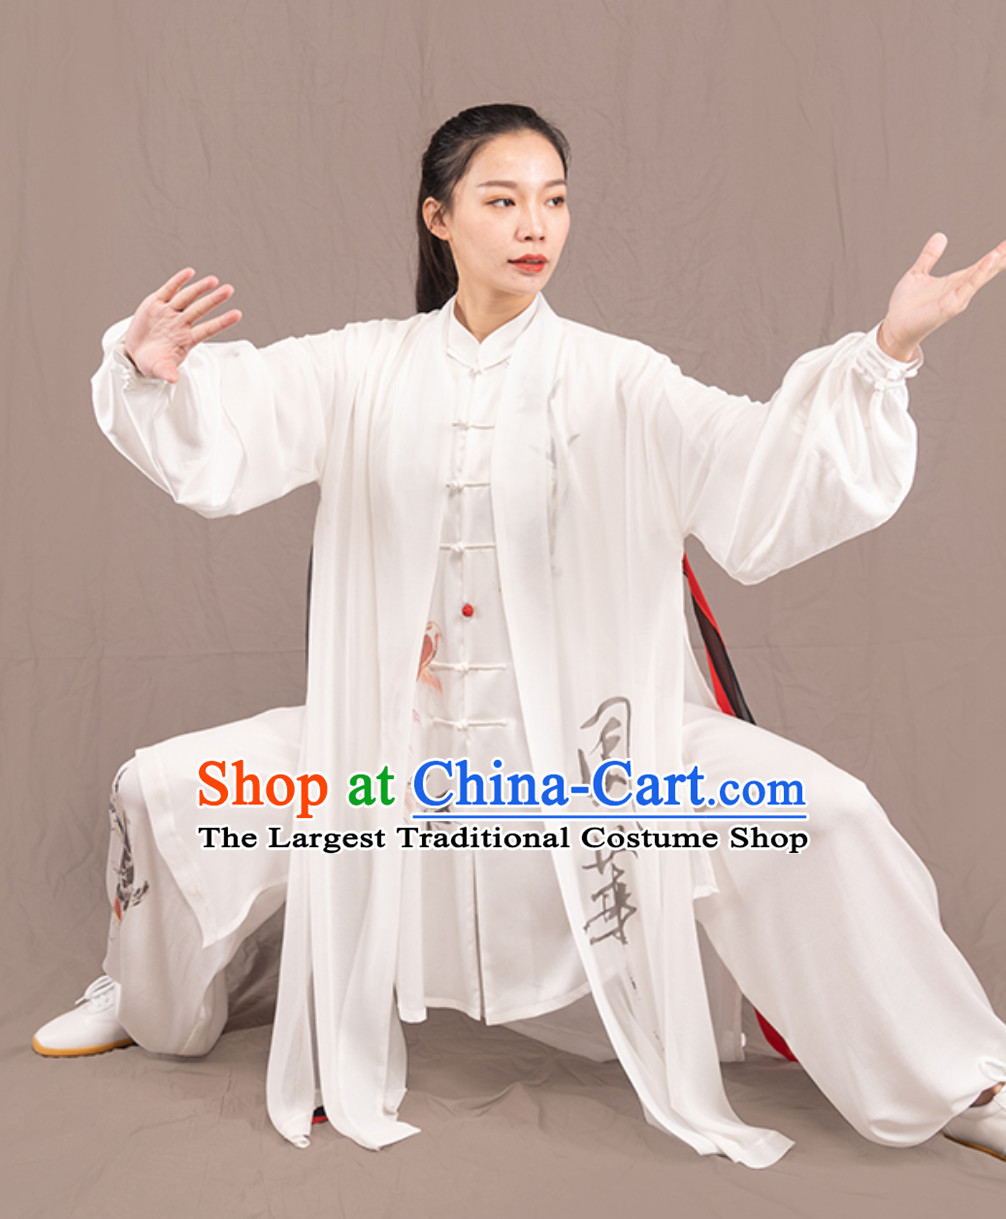 Top Chinese Traditional Competition Championship Professional Tai Chi Uniforms Taiji Kung Fu Wing Chun Kungfu Tai Ji Sword Master Clothing Suits Clothes 3 Pieces for Women